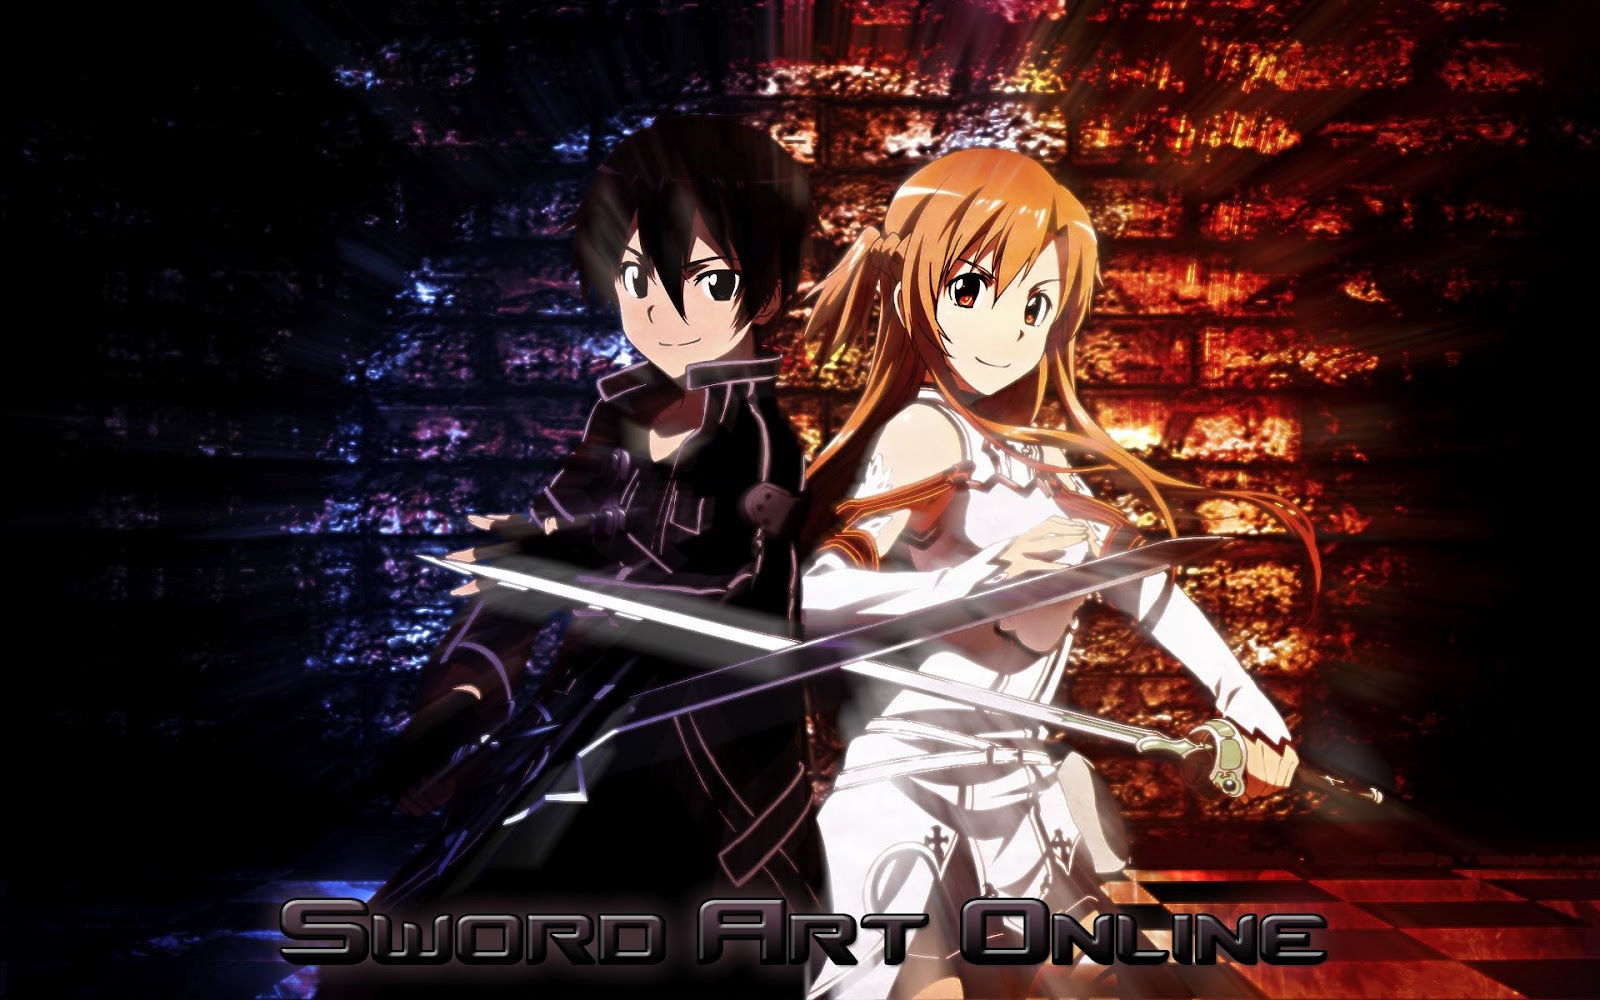 friend made this awesome sword art online wallpaper 1600x1000